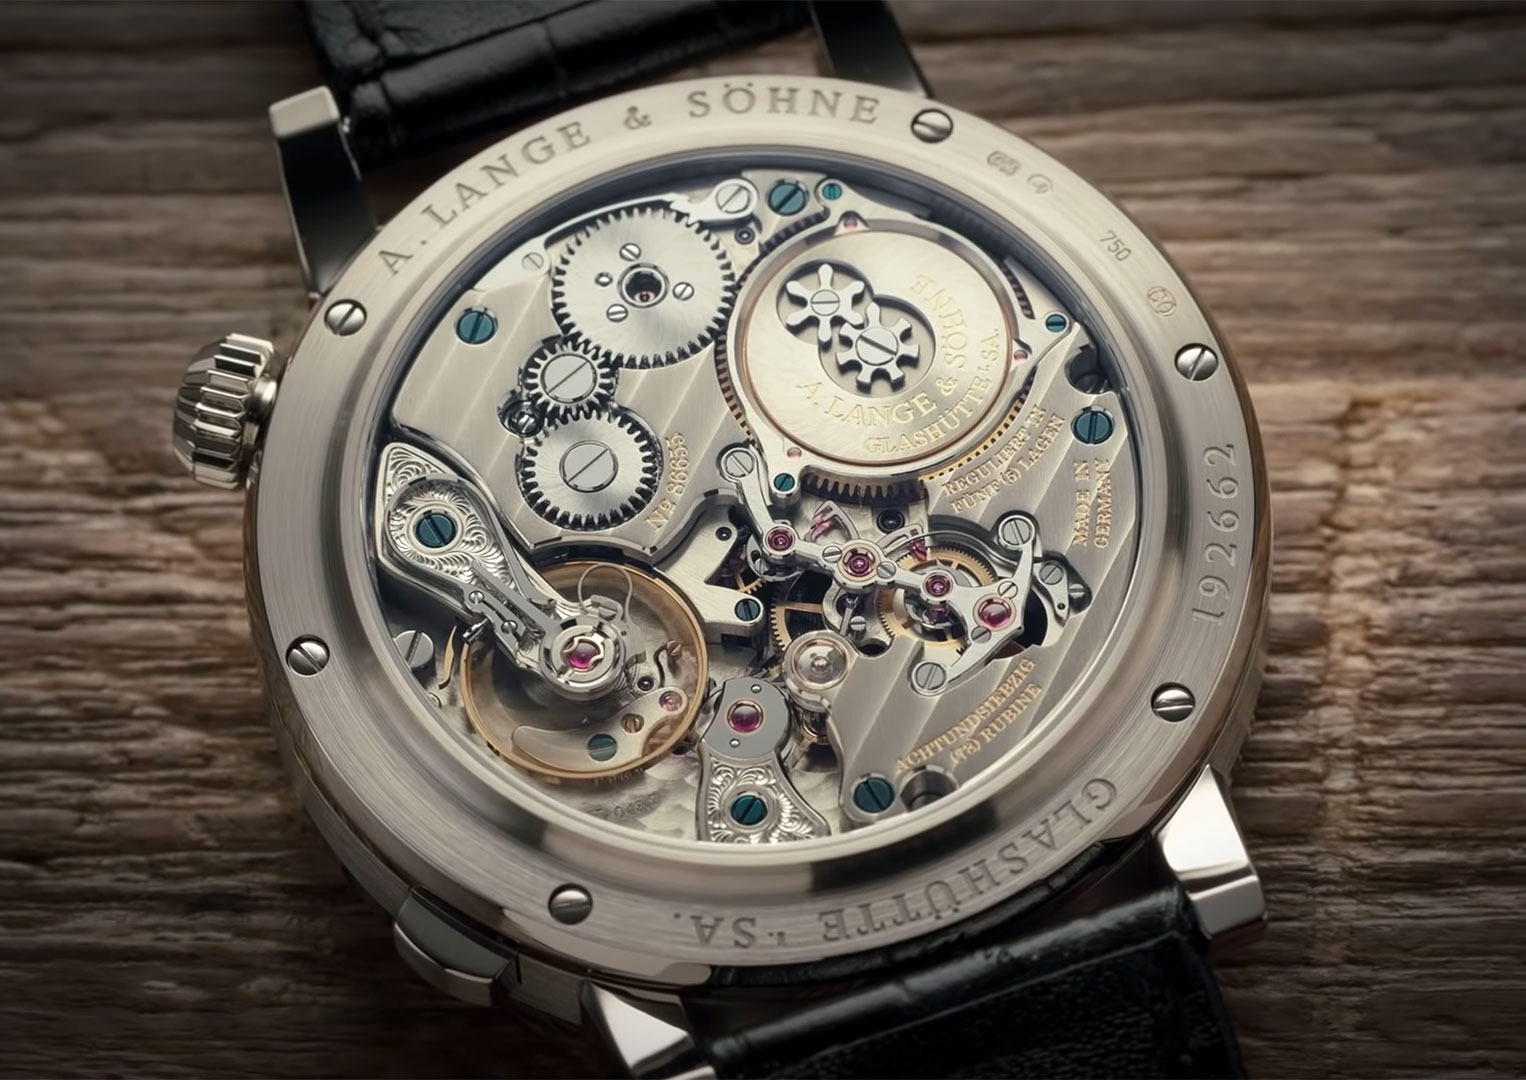 Along with other watch brands like Jaeger-LeCoultre and Vacheron Constantin, A. Lange & Söhne is owned by Richemont SA